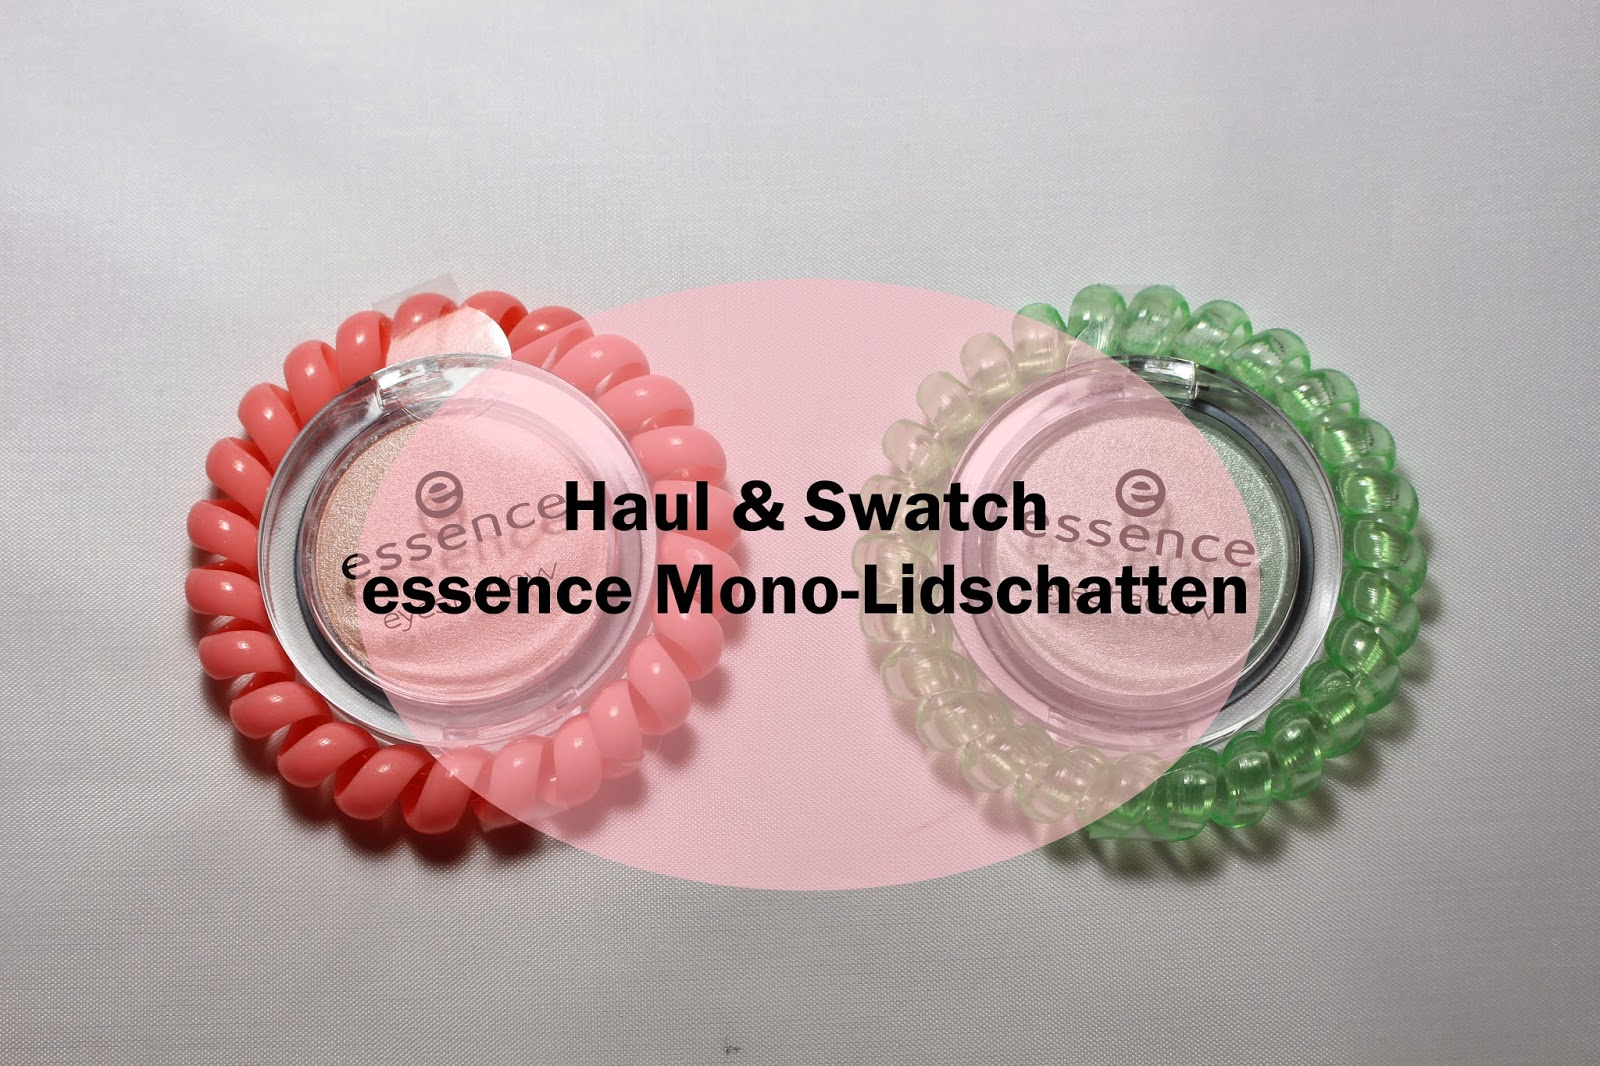 Haul & Swatch essence Mono-Lidschatten